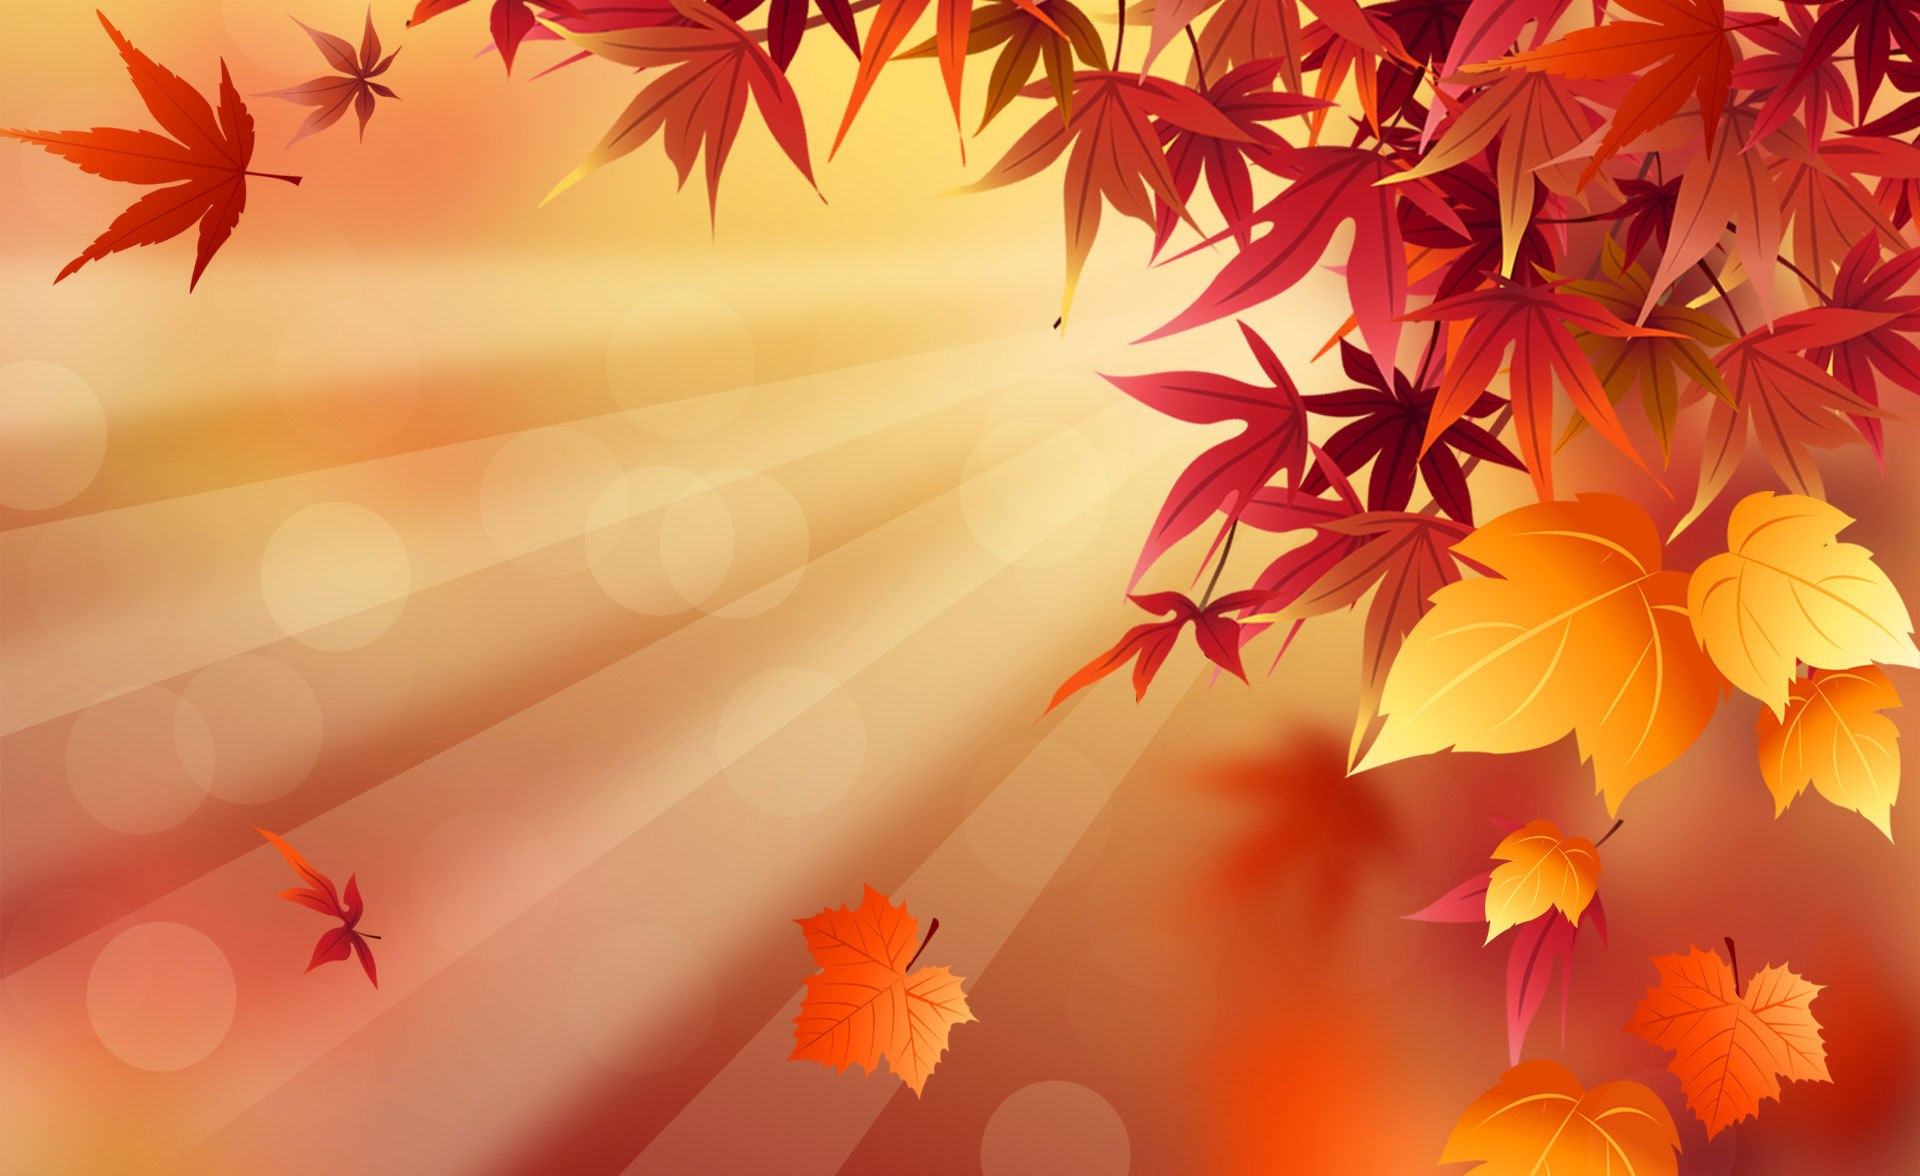 File:Fall Wallpaper.jpg